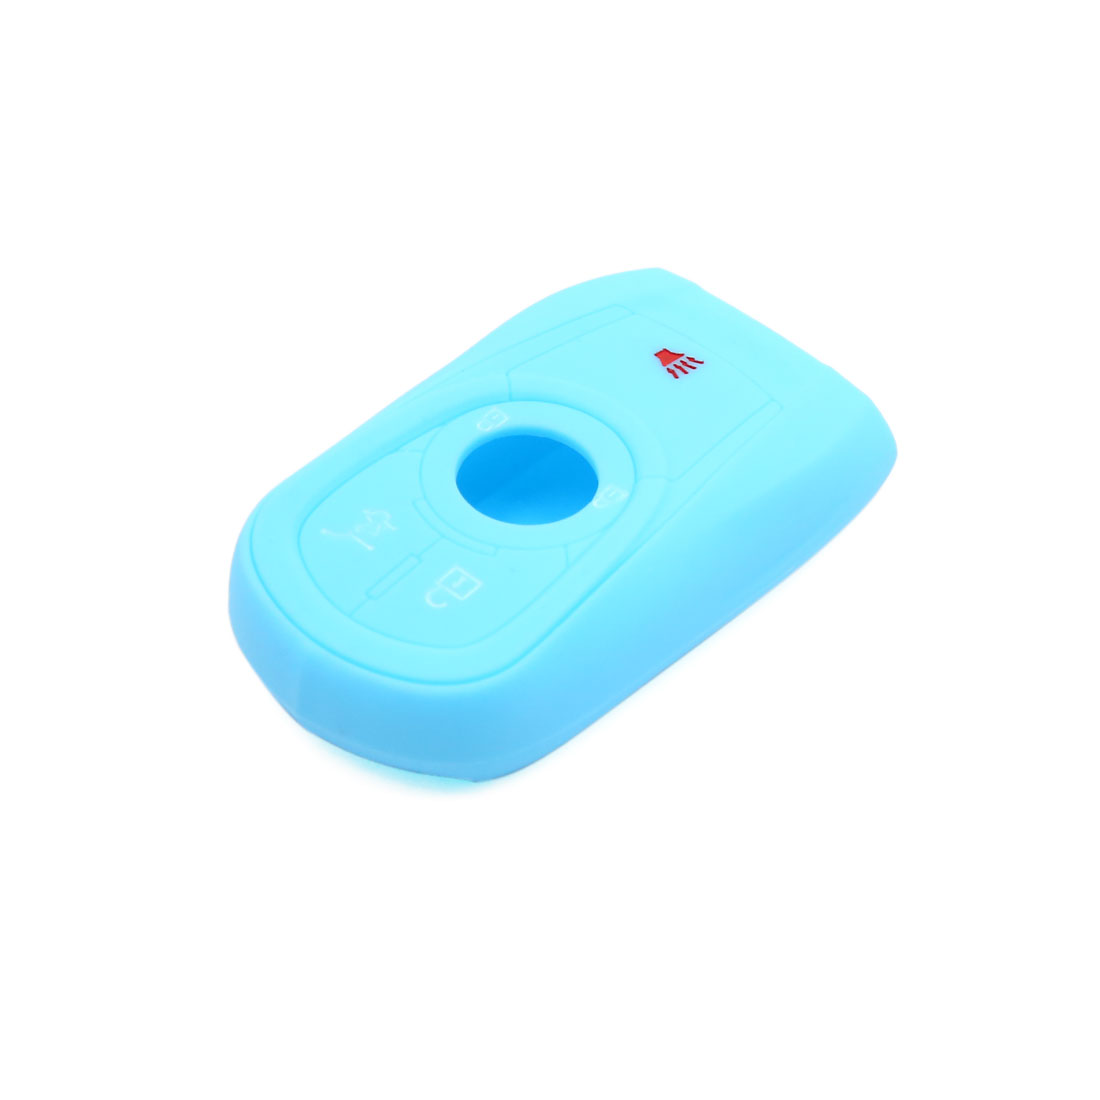 5 Button Sky Blue Car Silicone Remote Key Cover Case Fob Protector for Buick - image 2 de 4